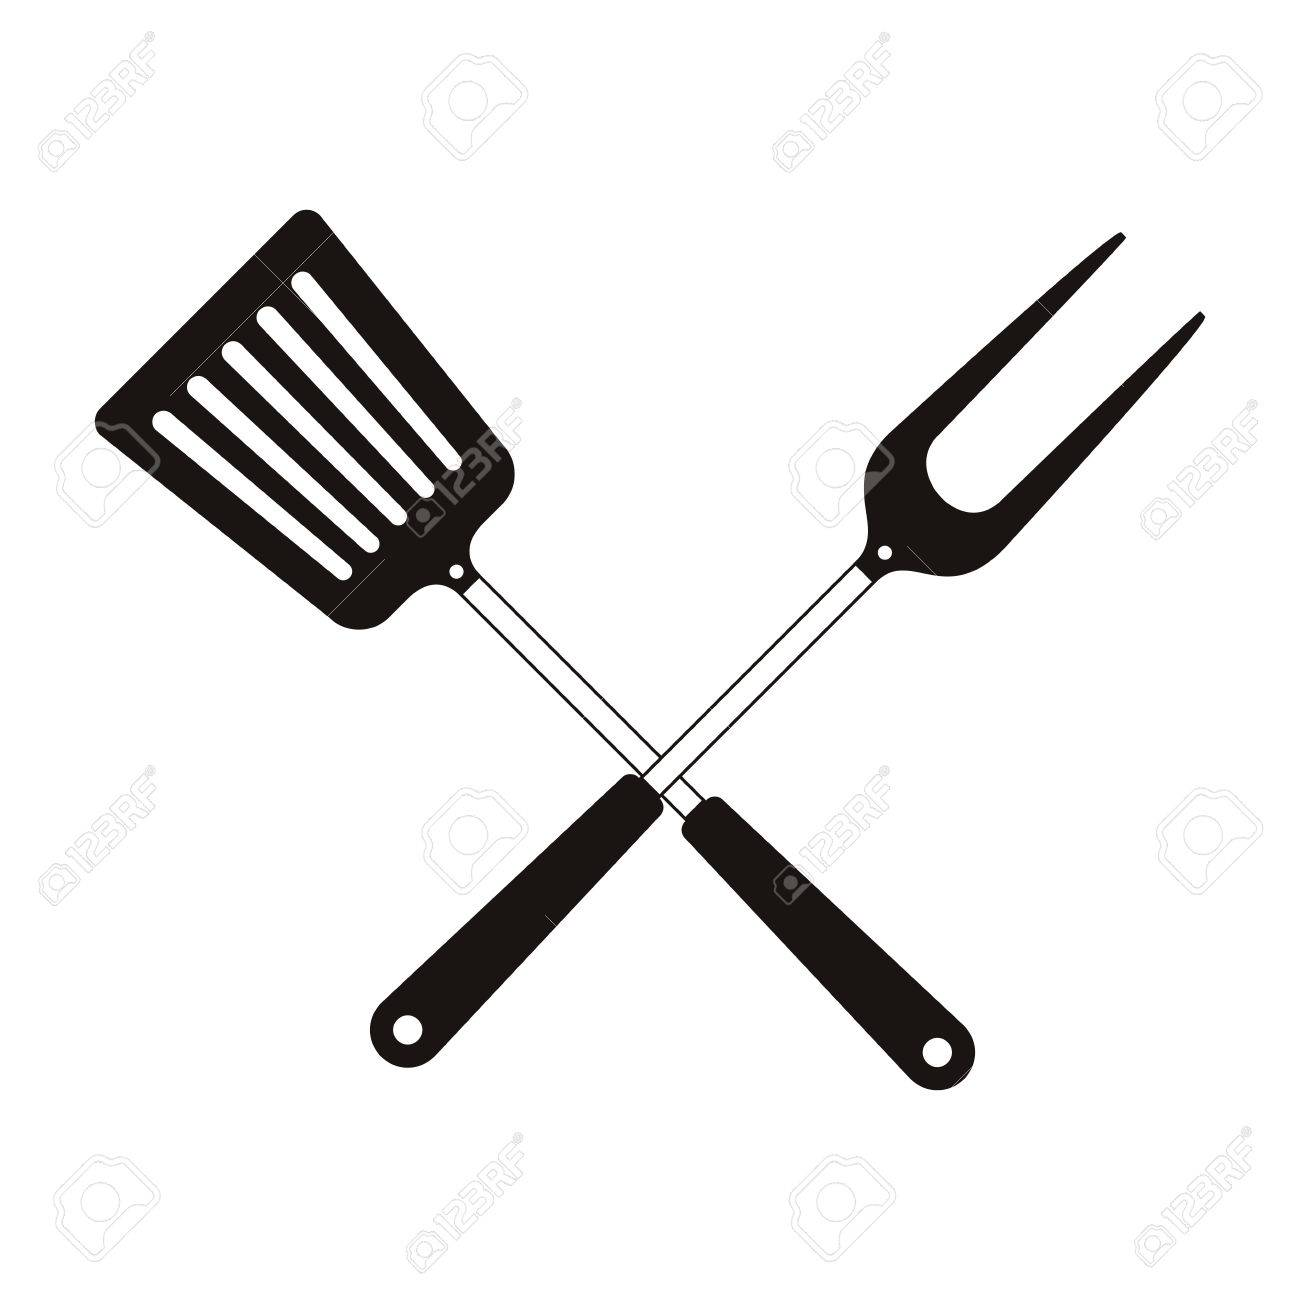 turner and fork crossed bbq cooking utensils icon. Steak house...